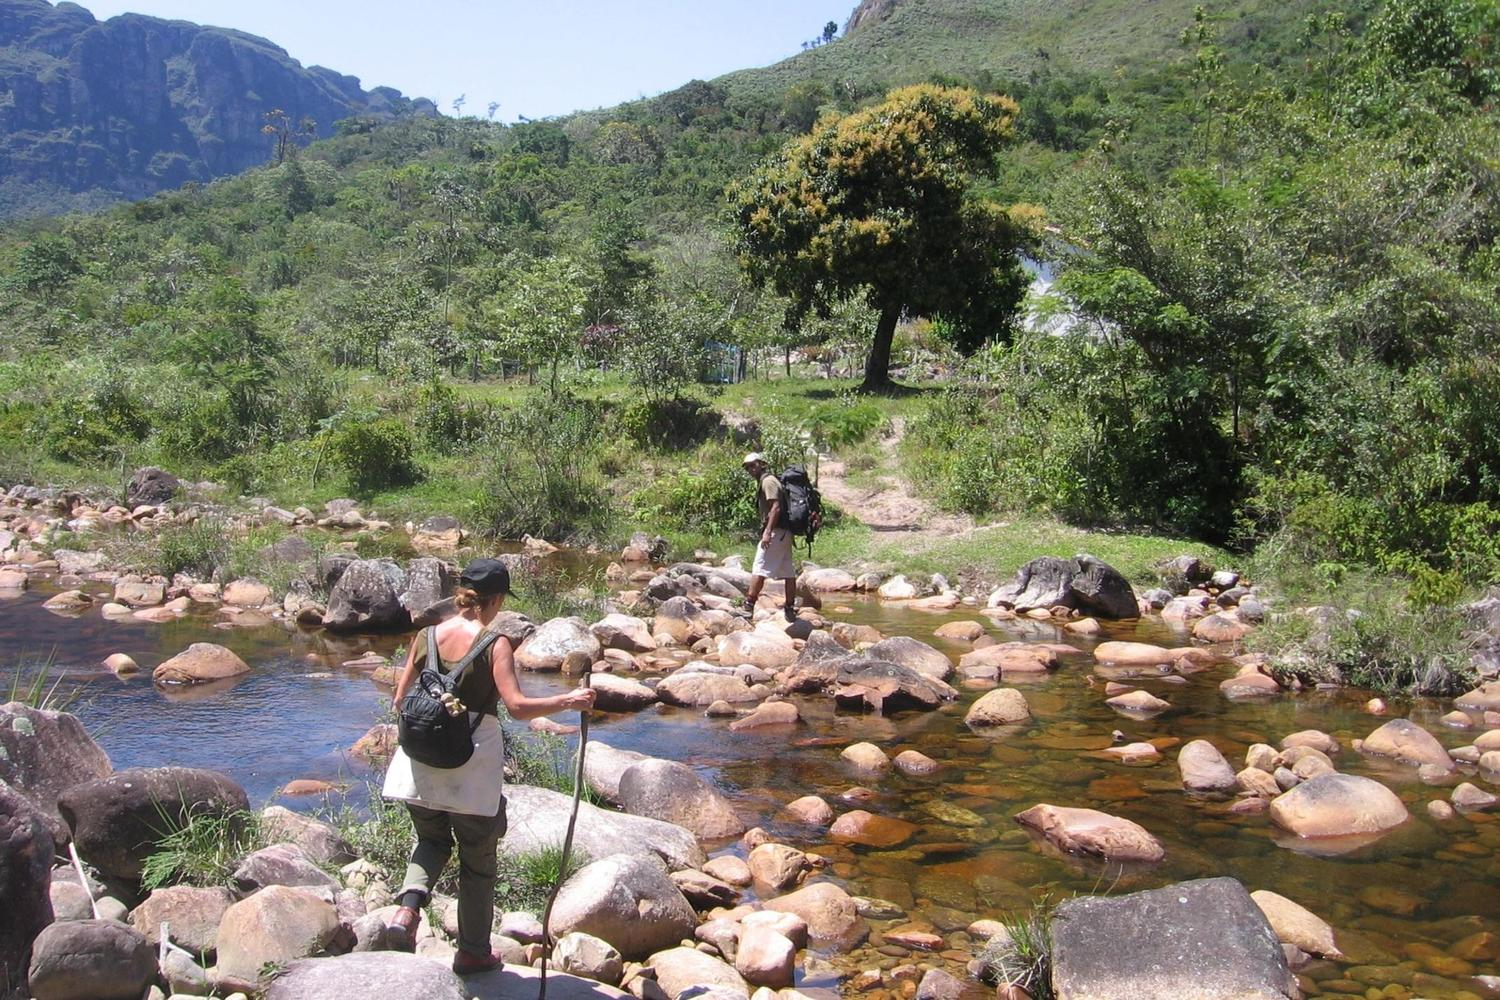 The Pati Valley is a landscape of waterfalls, rivers and mountains